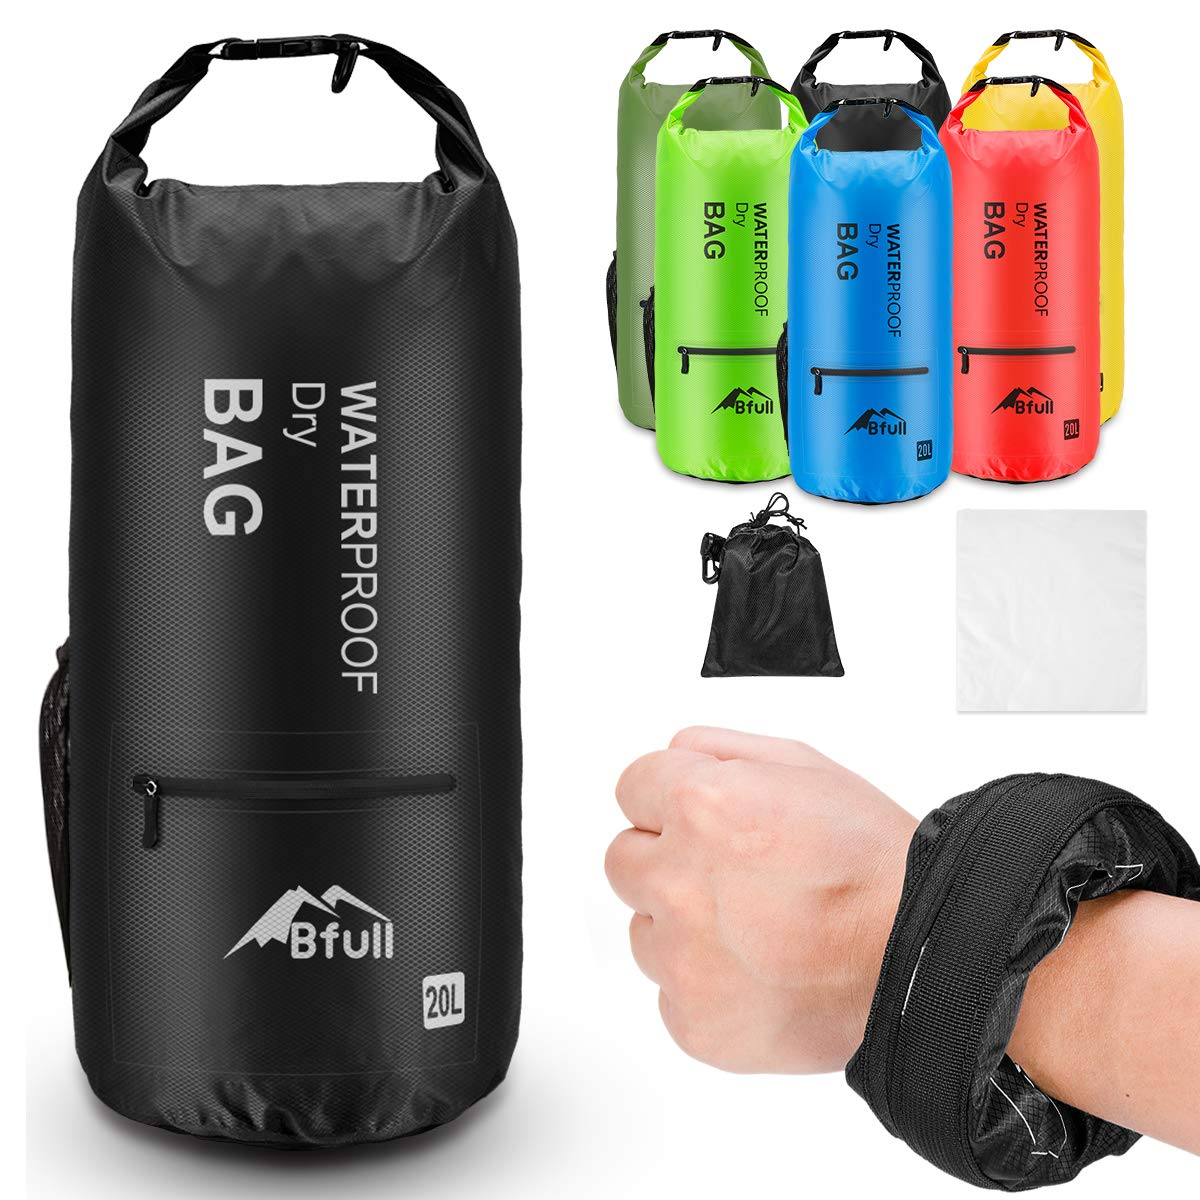 BFULL Waterproof Dry Bag 5L/10L/20L/30L/40L [Lightweight Compact] Roll Top Water Proof Backpack with 2 Exterior Zip Pocket for Kayaking, Boating, Duffle, Camping, Floating, Rafting, Fishing (Black) by BFULL